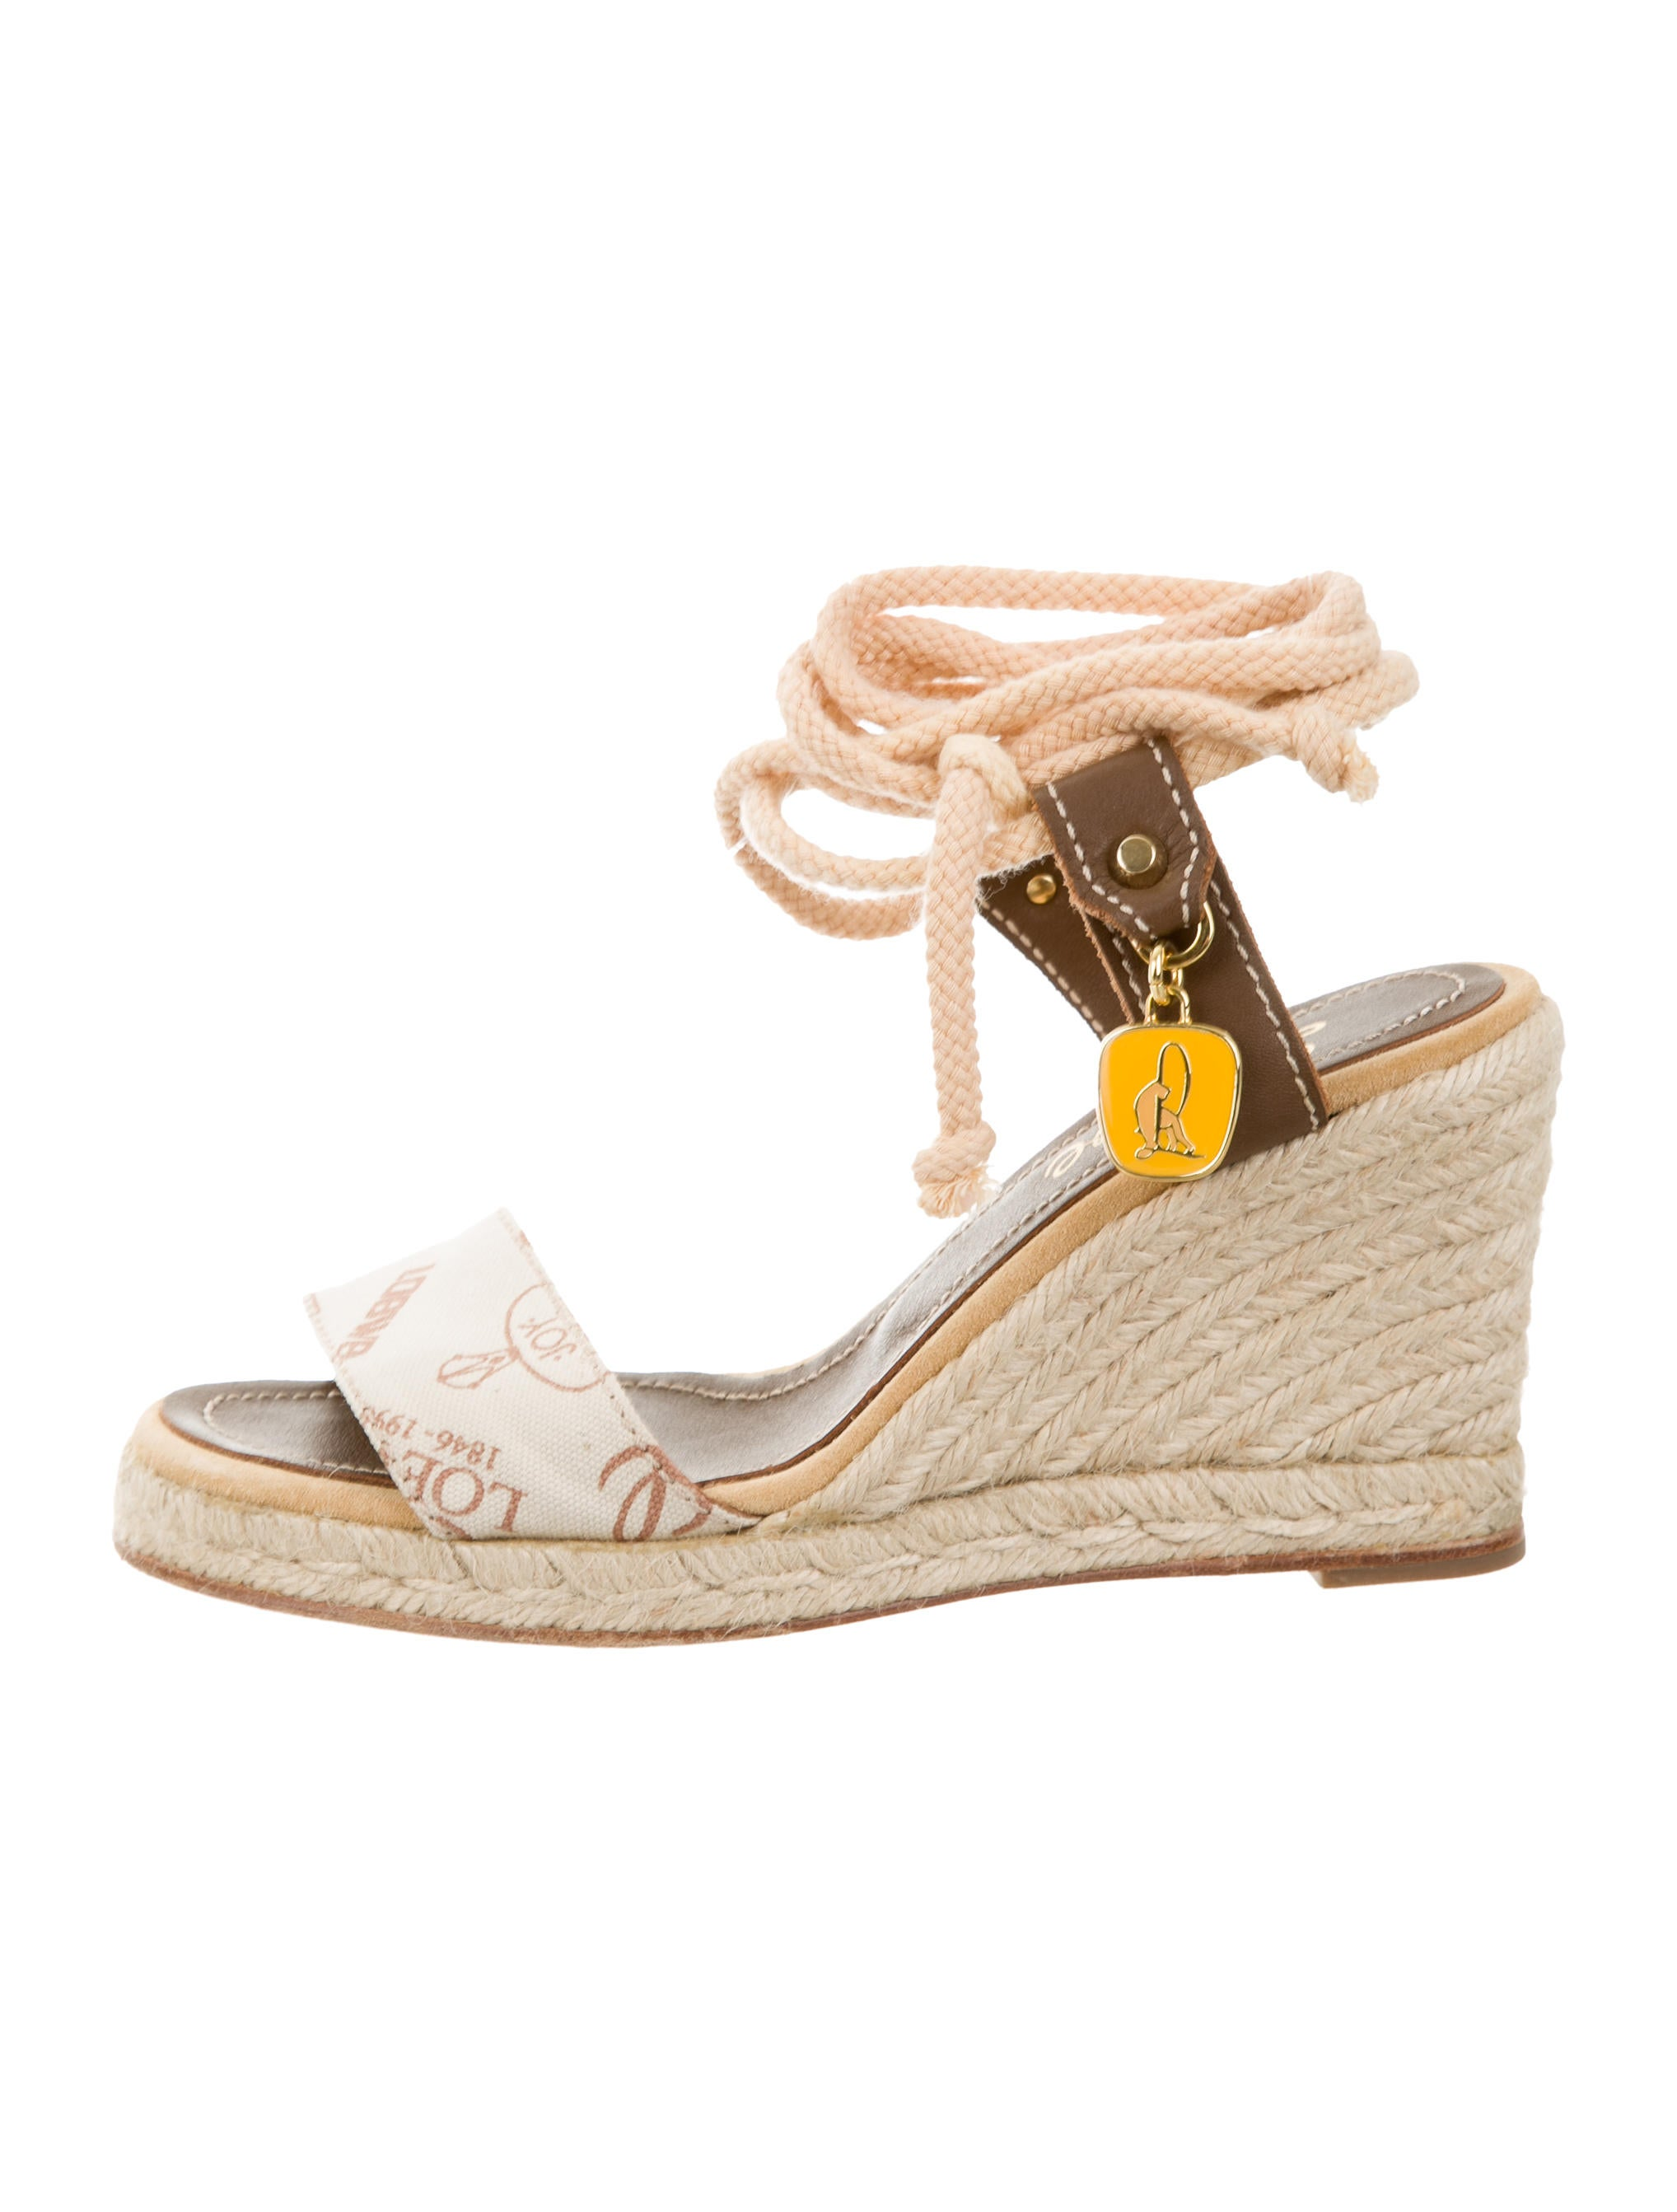 loewe canvas espadrilles wedges shoes low21303 the